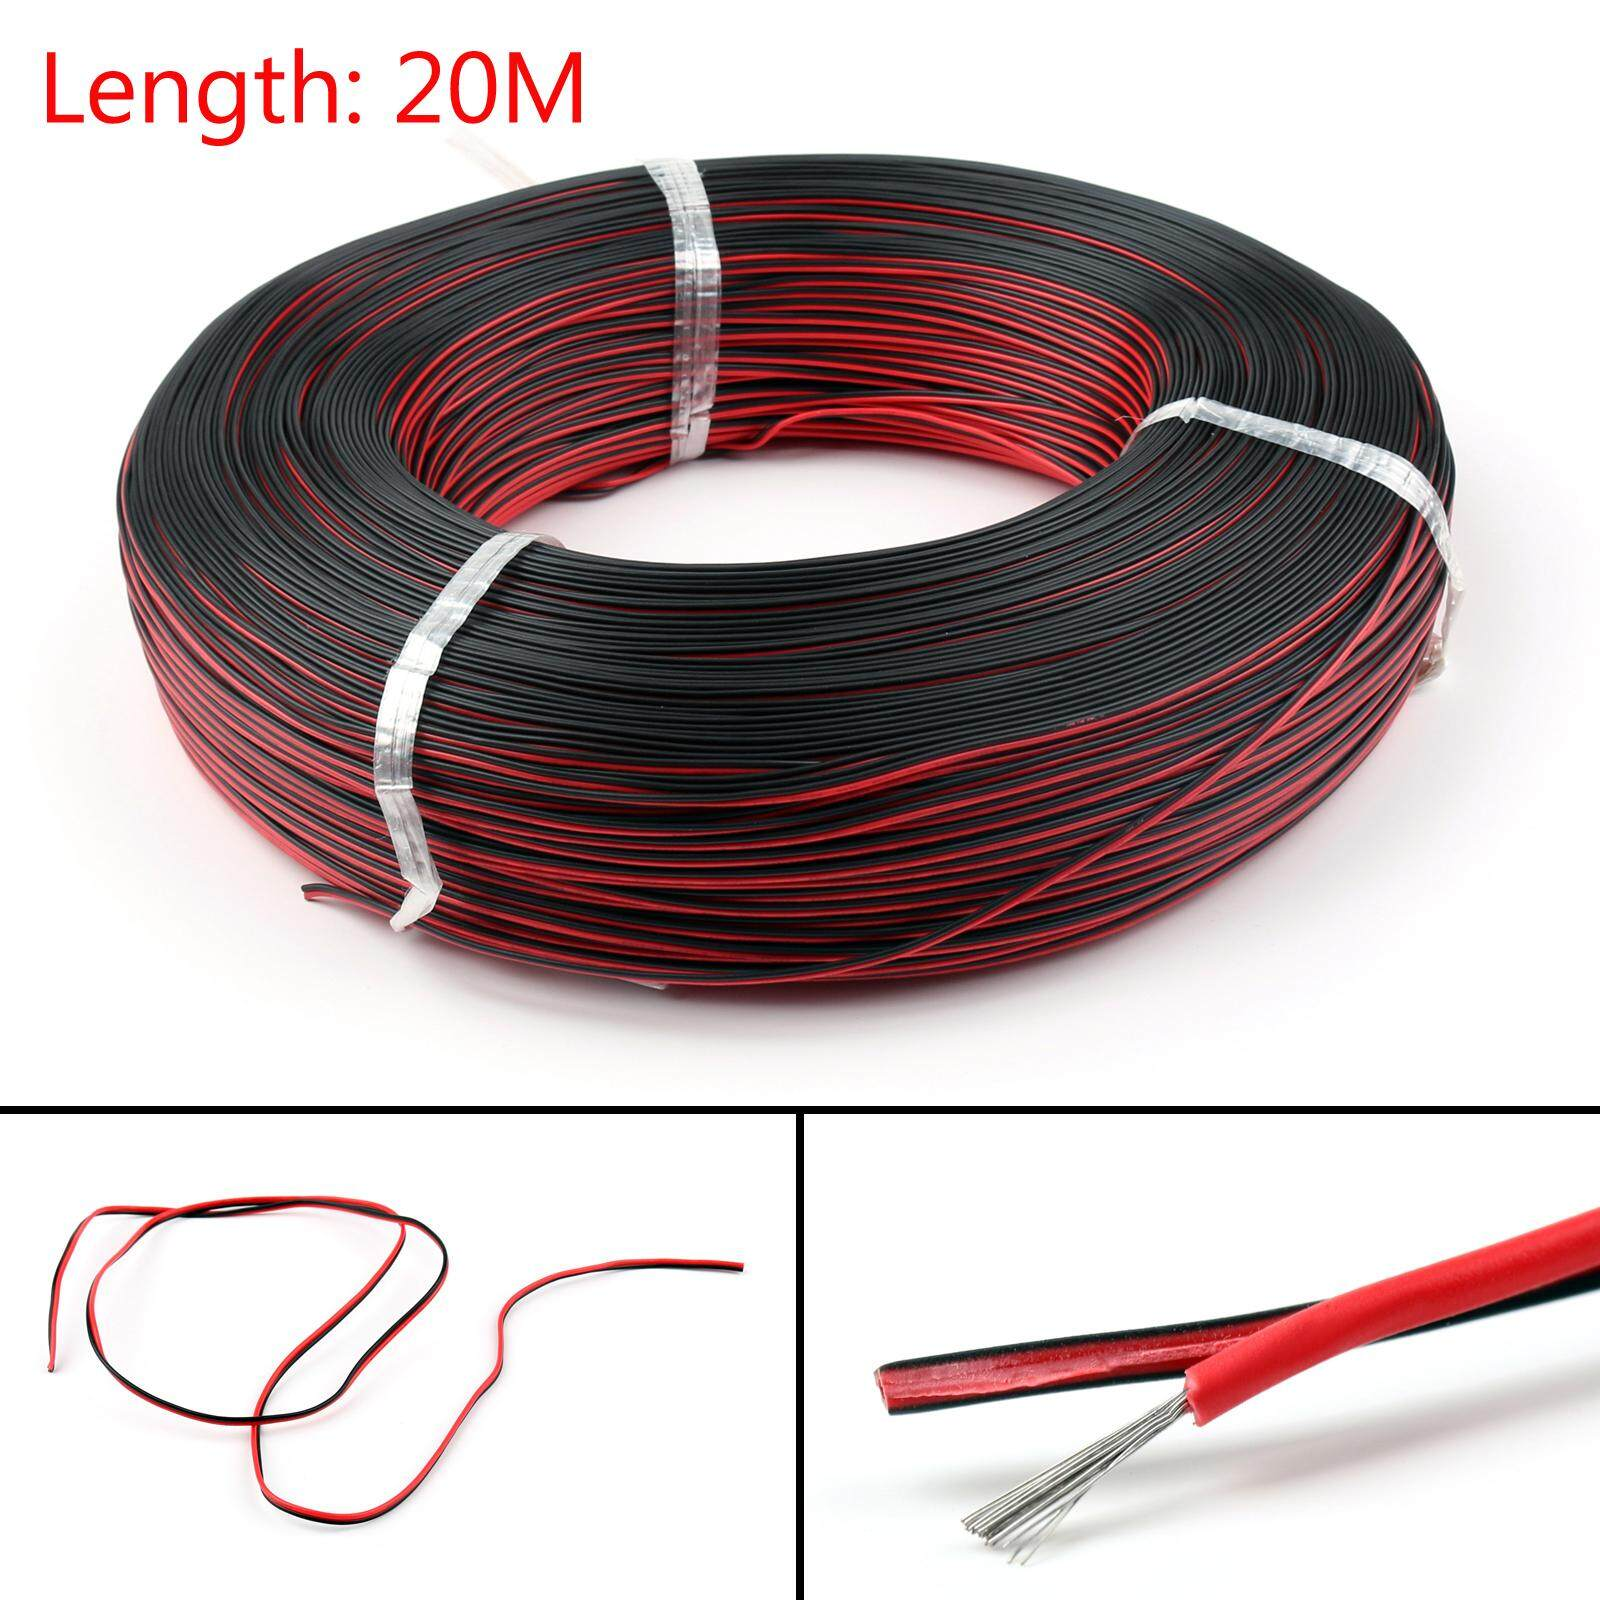 Areyourshop 20M 2Pin 20AWG Extension Red Black Wire Cable Cord for 3528 5050 5630 LED Strip - intl